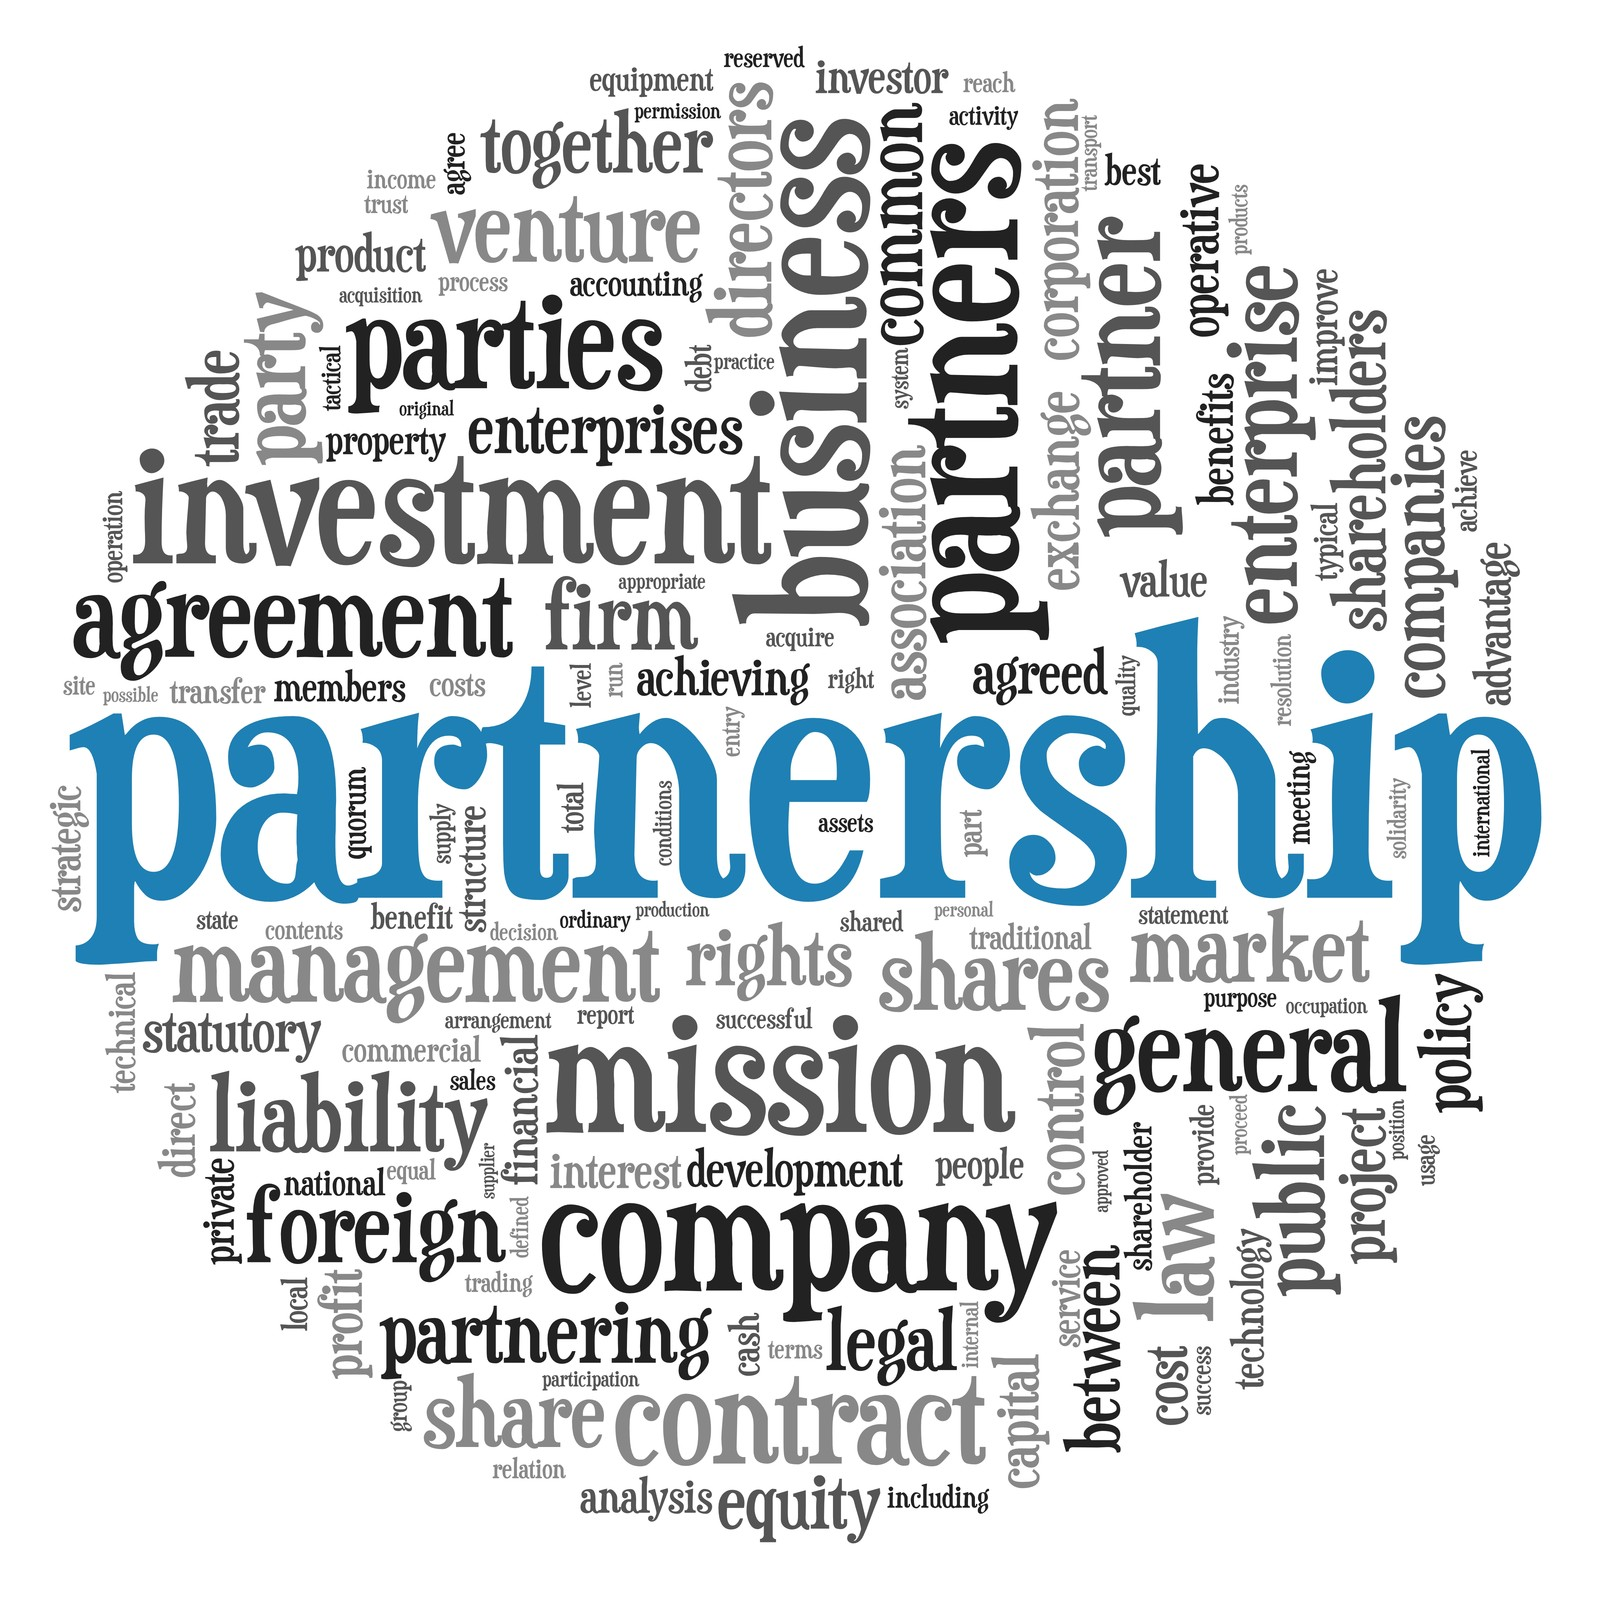 int 601 business venture Understanding the treatment of joint ventures between  mention of a joint venture is in far 9601,  specific business venture for joint profit, for.